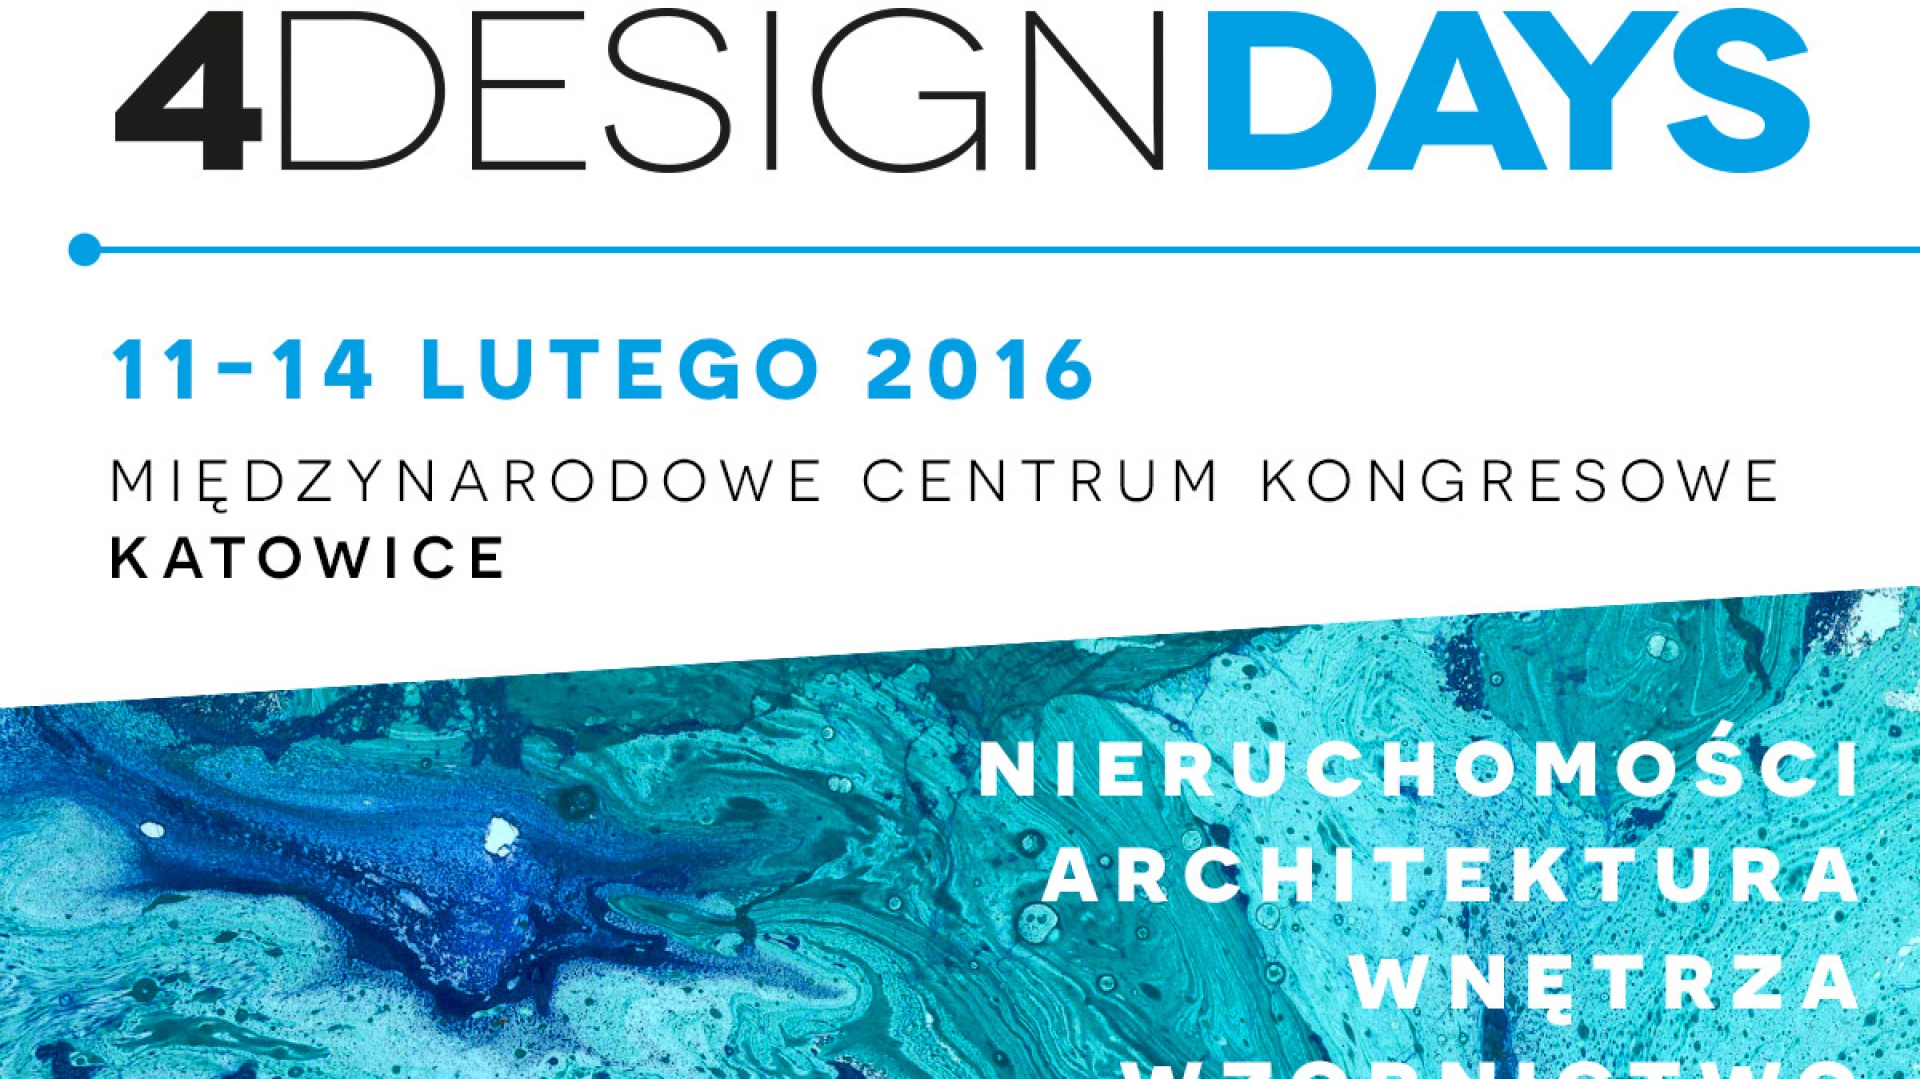 Fot. Plakat prasowy 4Design Days